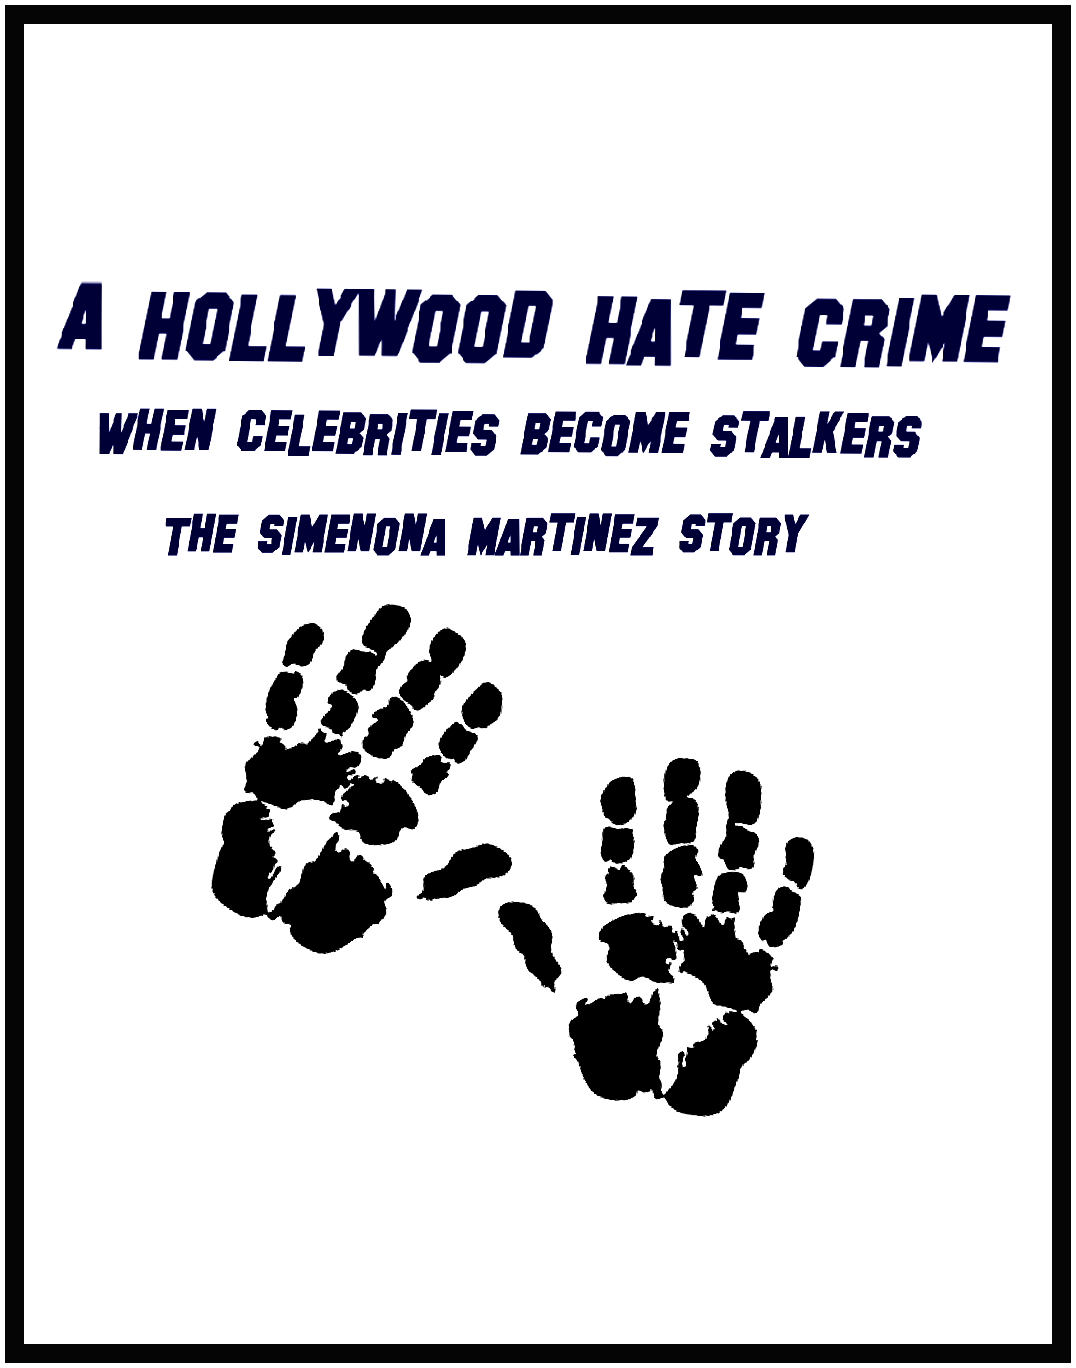 A Hollywood Hate Crime: #HollywoodHateCrime